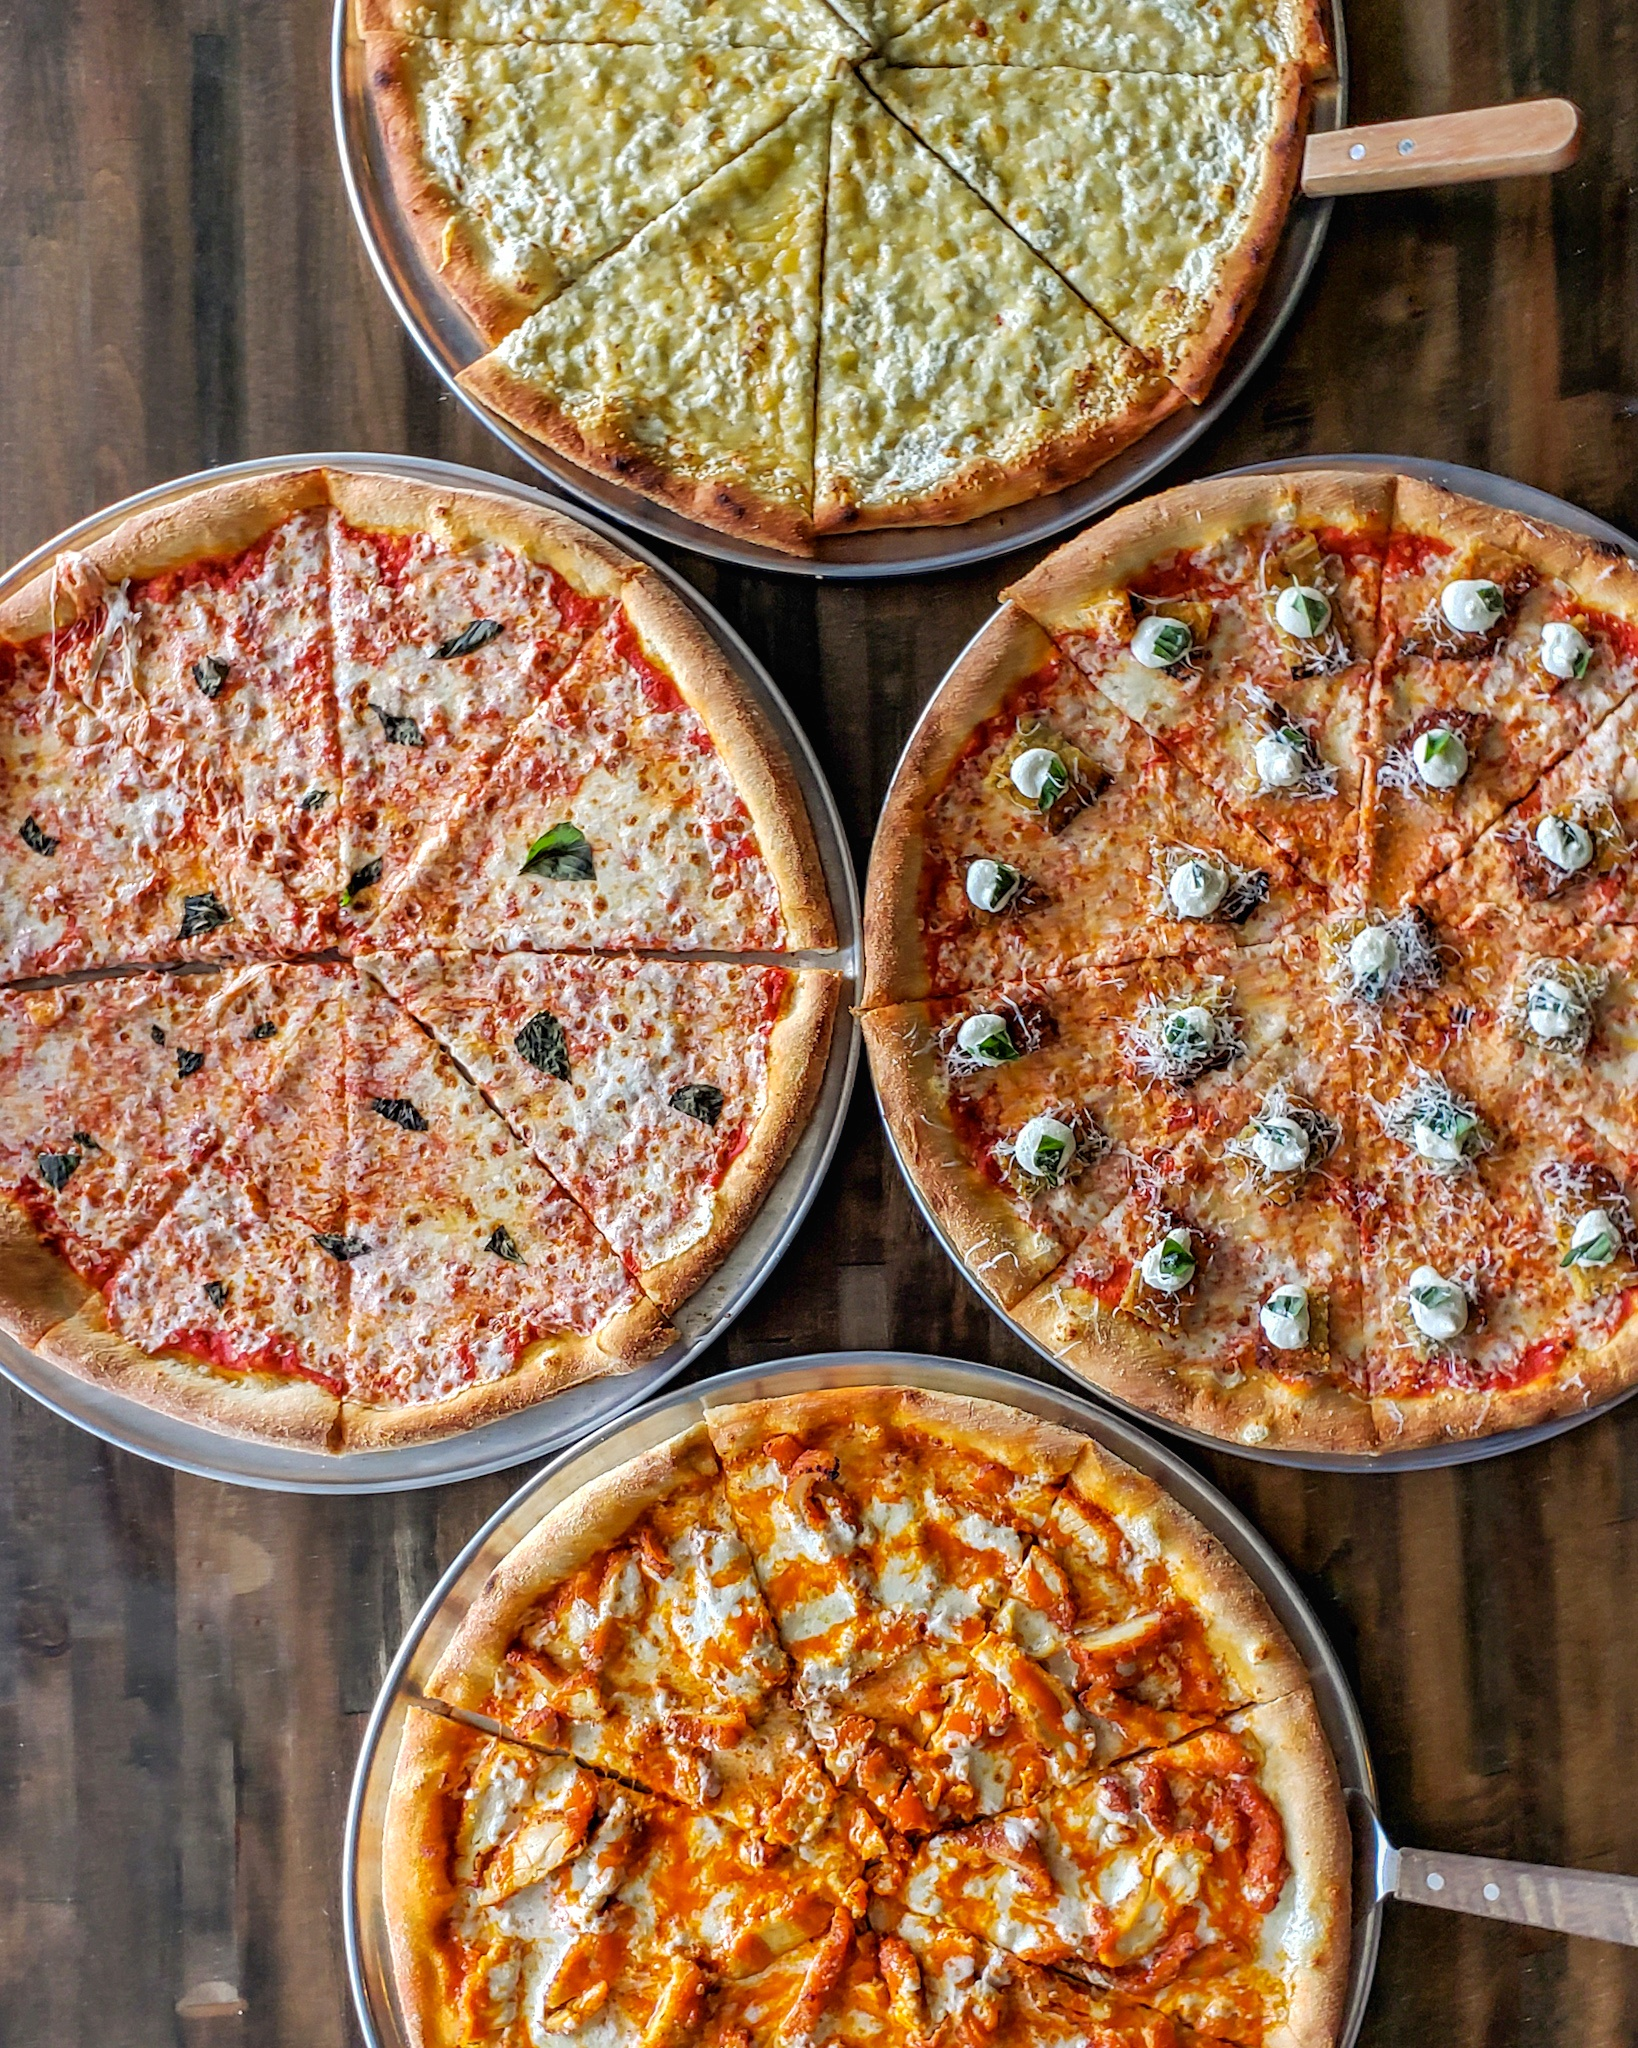 Brick Oven Pizza - Fresh pie made to order! Choose from one of our carefully selected gourmet pizzas or make your own and pick from a list of fresh toppings.